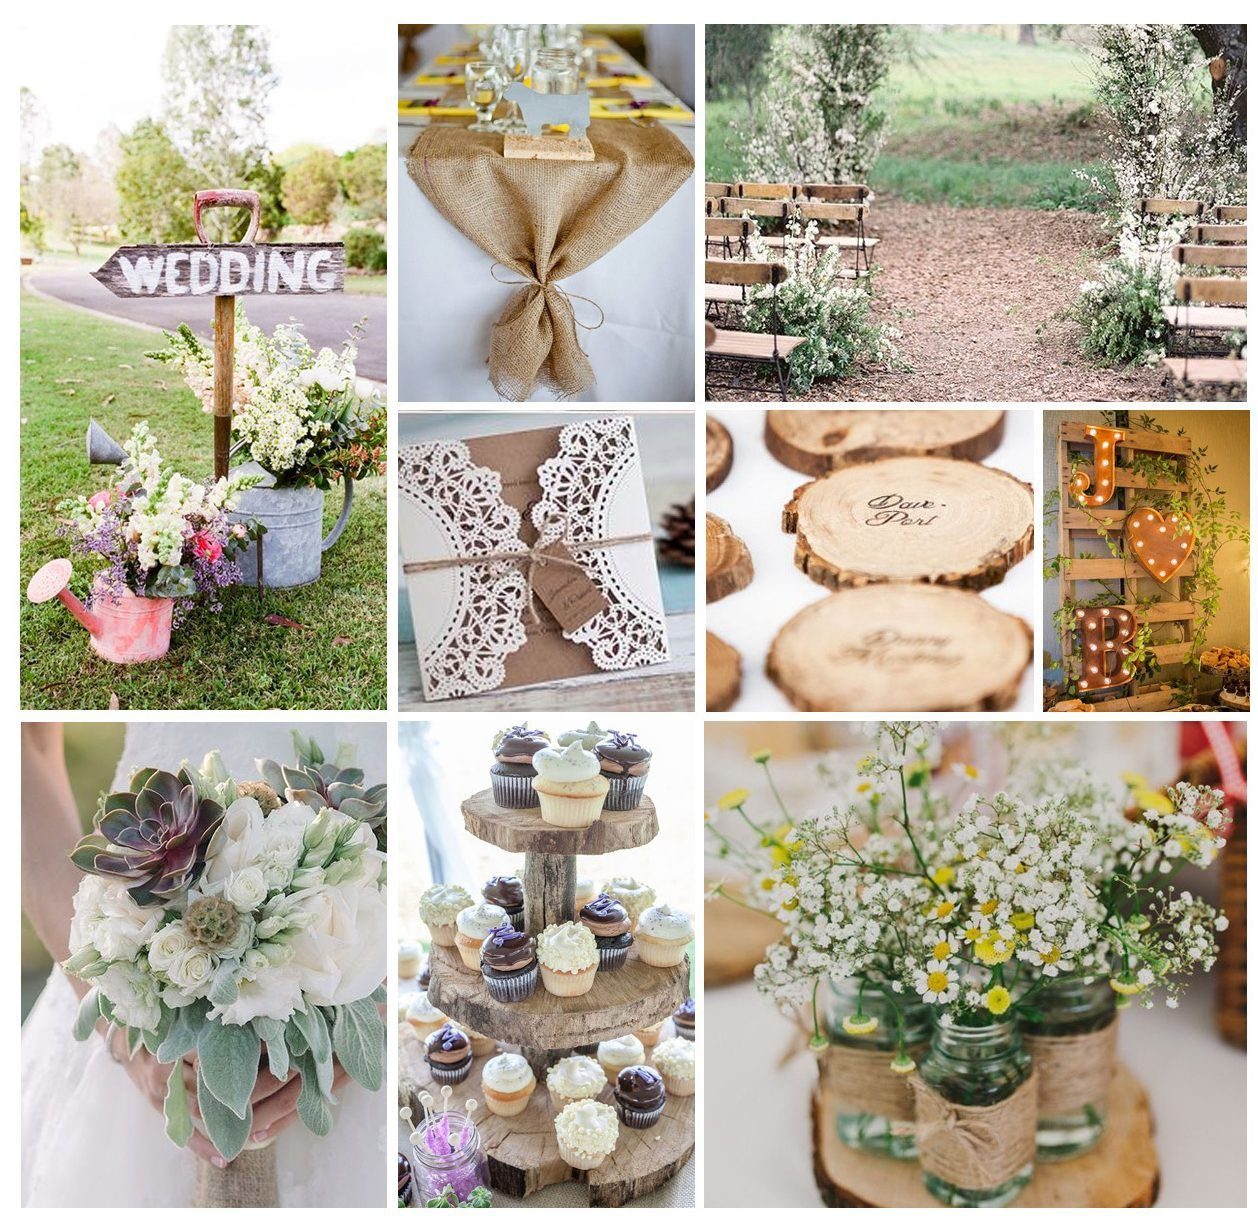 Fun365 Craft Party Wedding Classroom Ideas Inspiration Rustic Spring Wedding Diy Wedding Inspiration Wedding Motifs